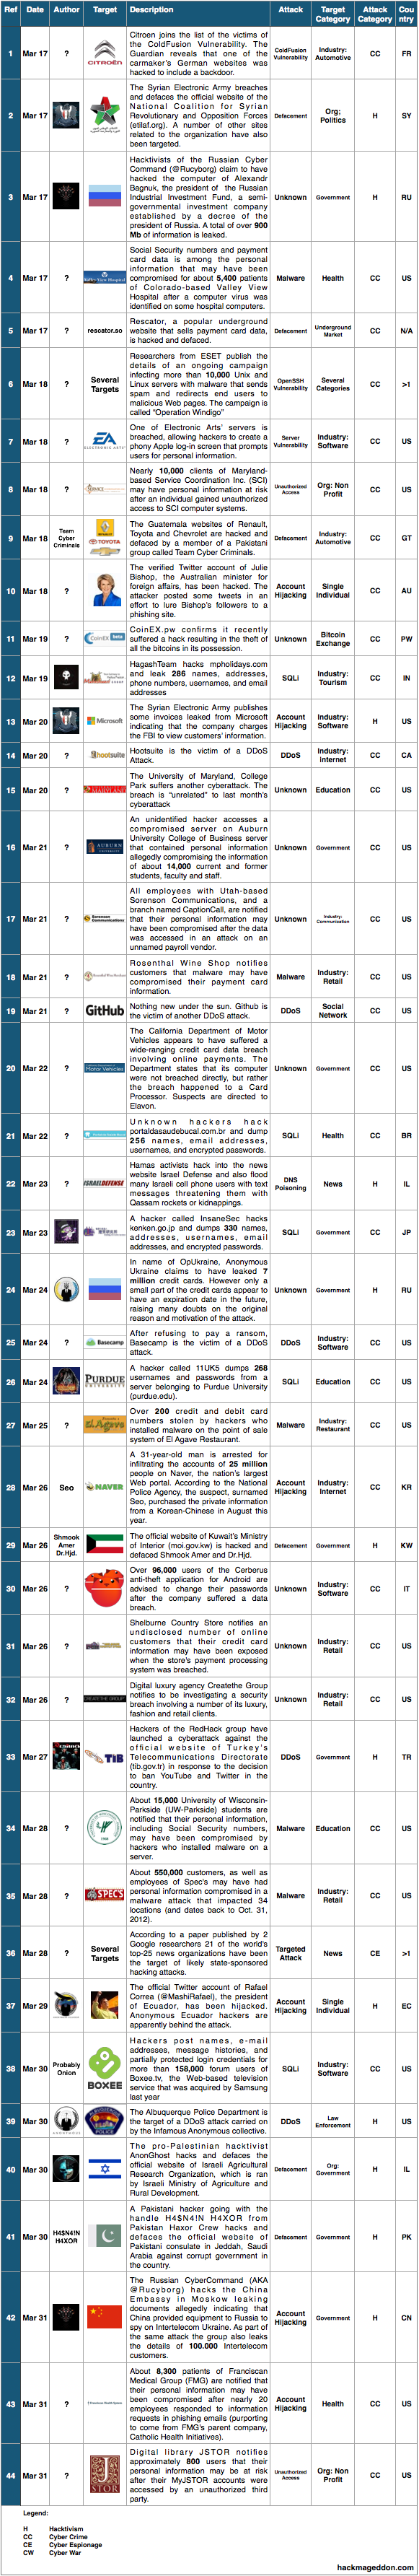 16-31 Mar 2014 Cyber Attacks Timelines